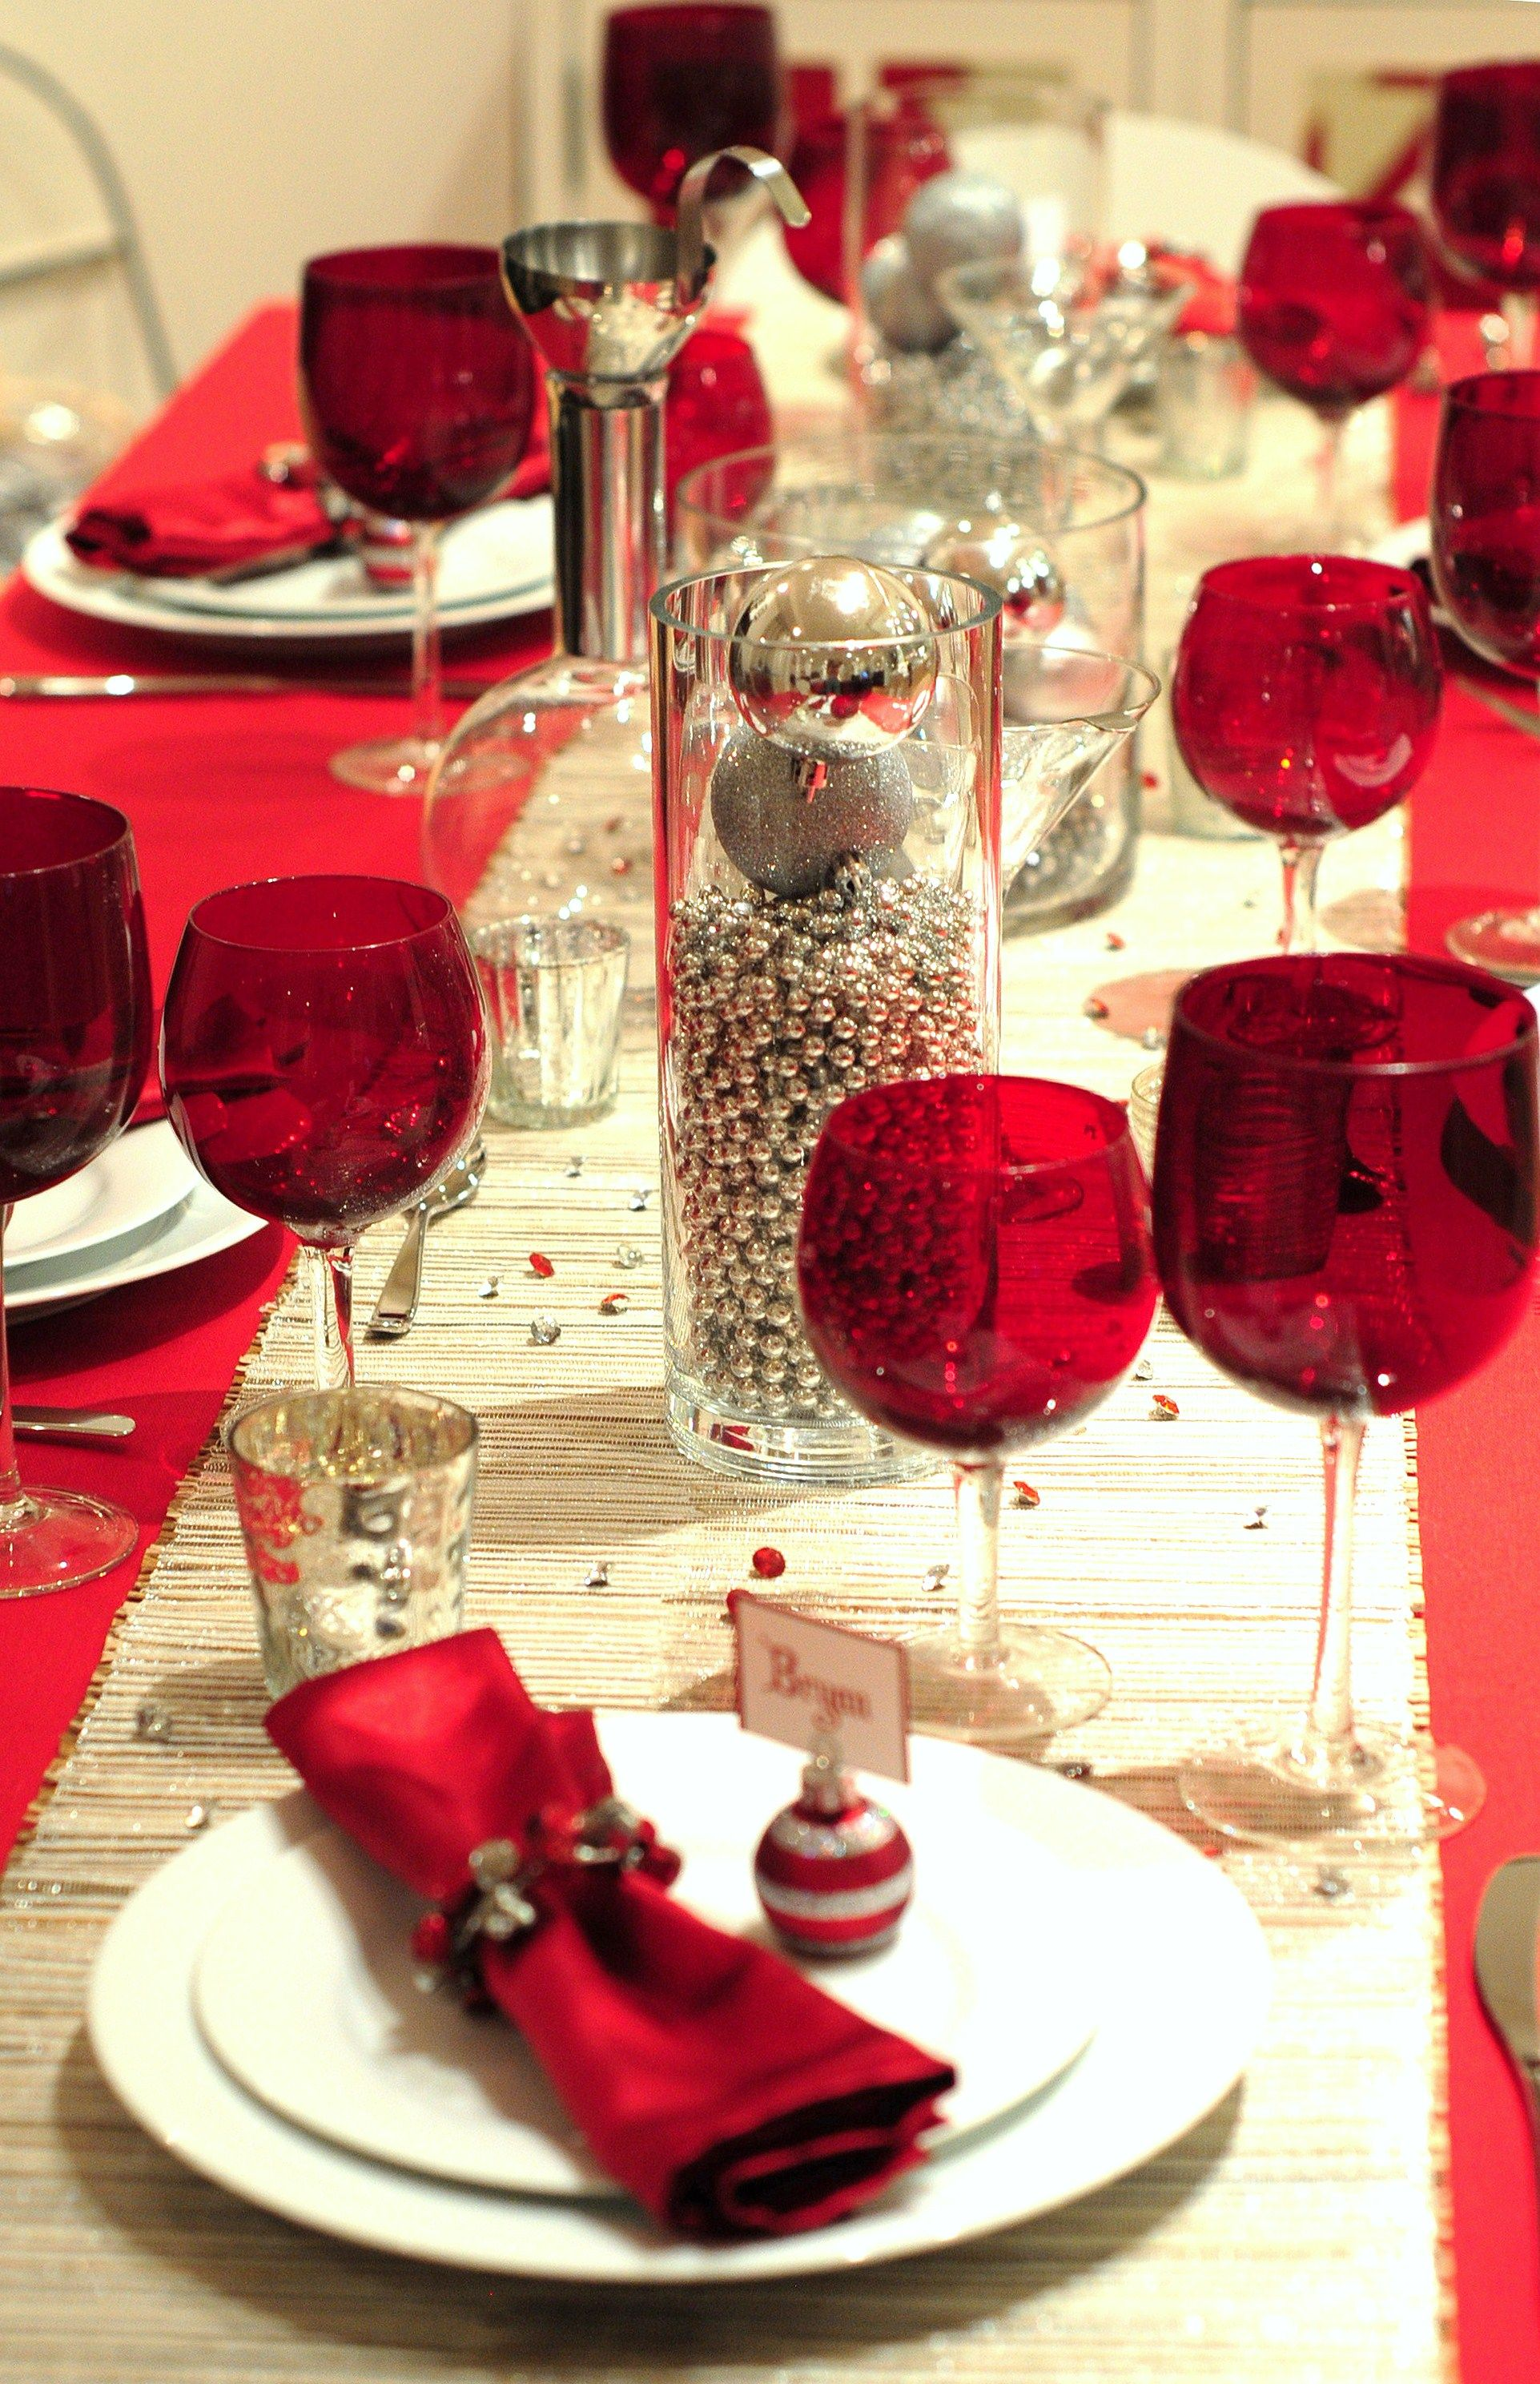 Christmas table setting ask for red wine glasses dream for Christmas lunch table setting ideas